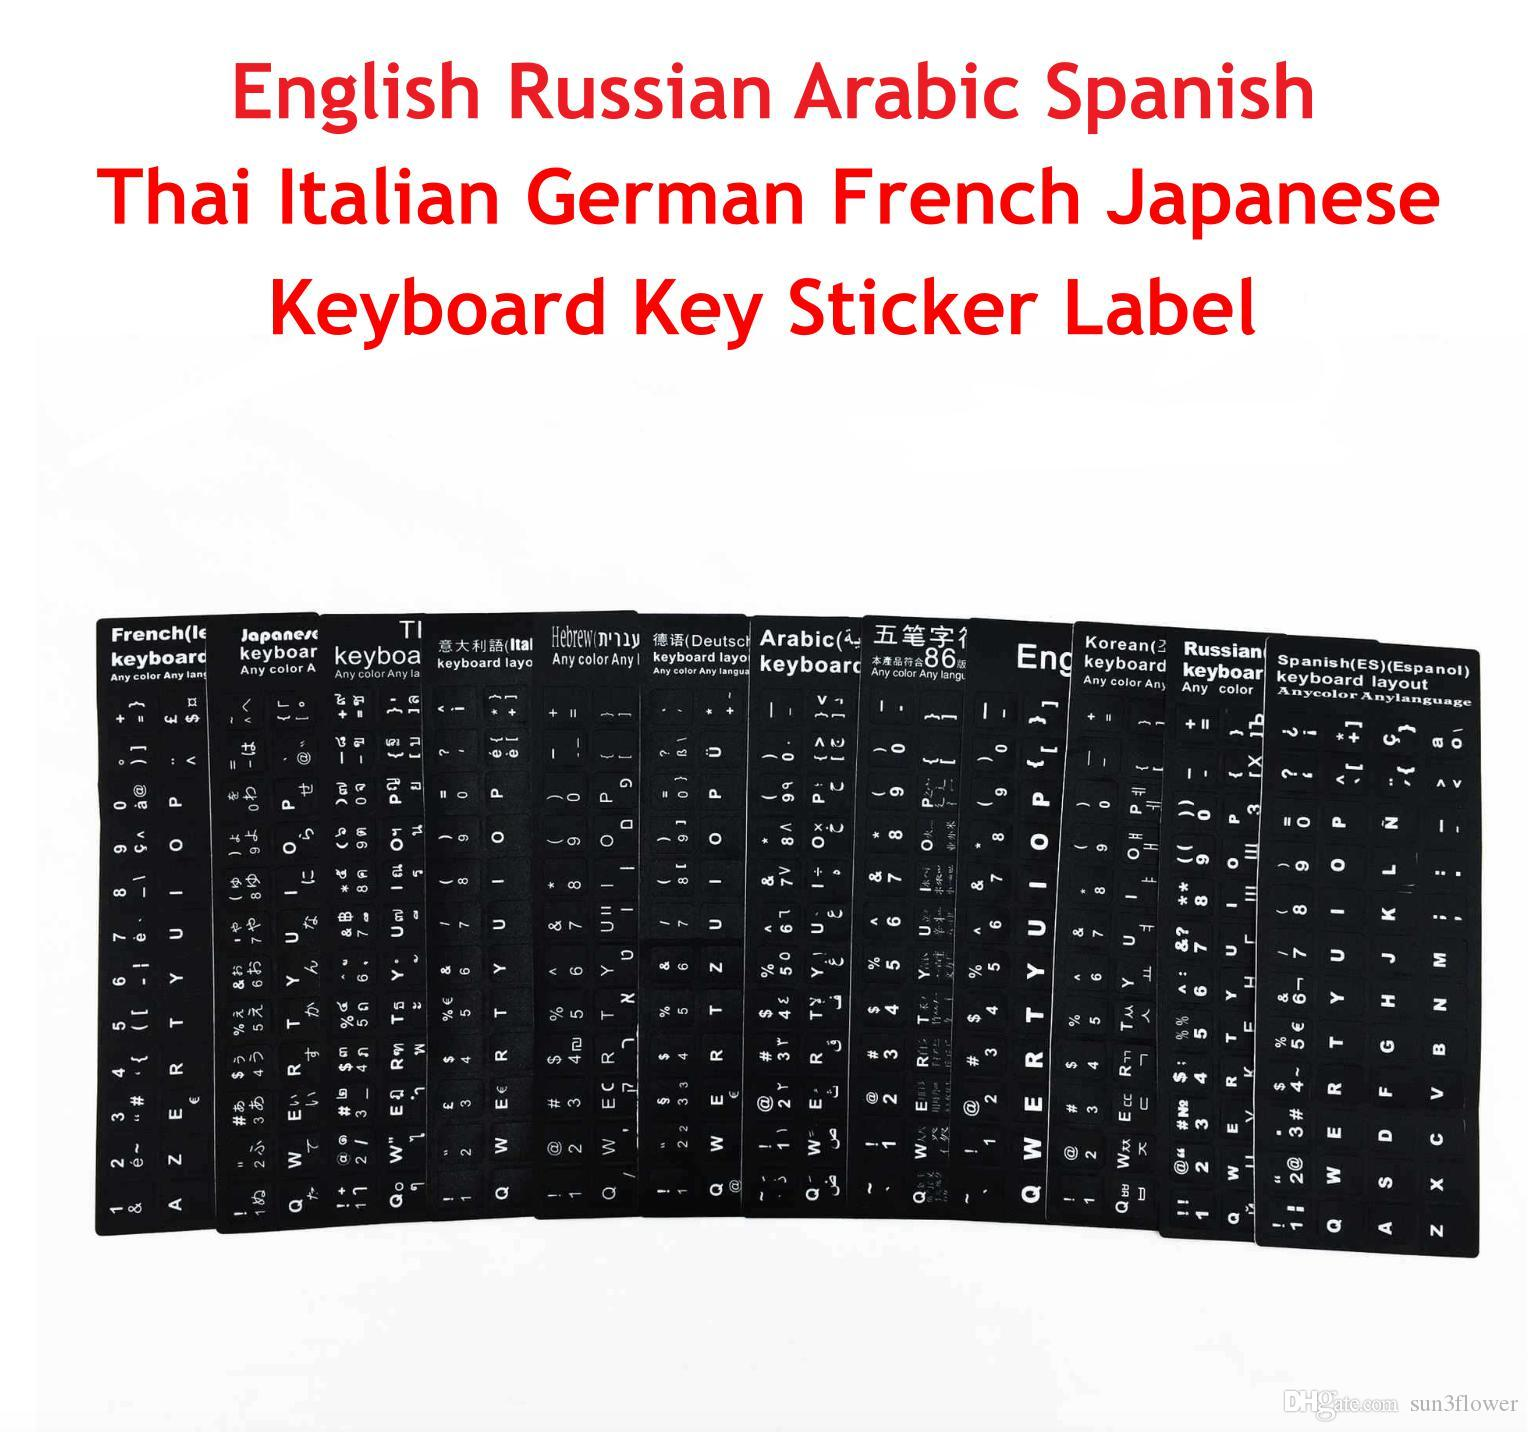 EN SP GE RU FR IT TH JP KR Arabic Hebrew Wubi Cangjie Chinese Keyboard Key Sticker Label Fit For 10-17 inch laptop